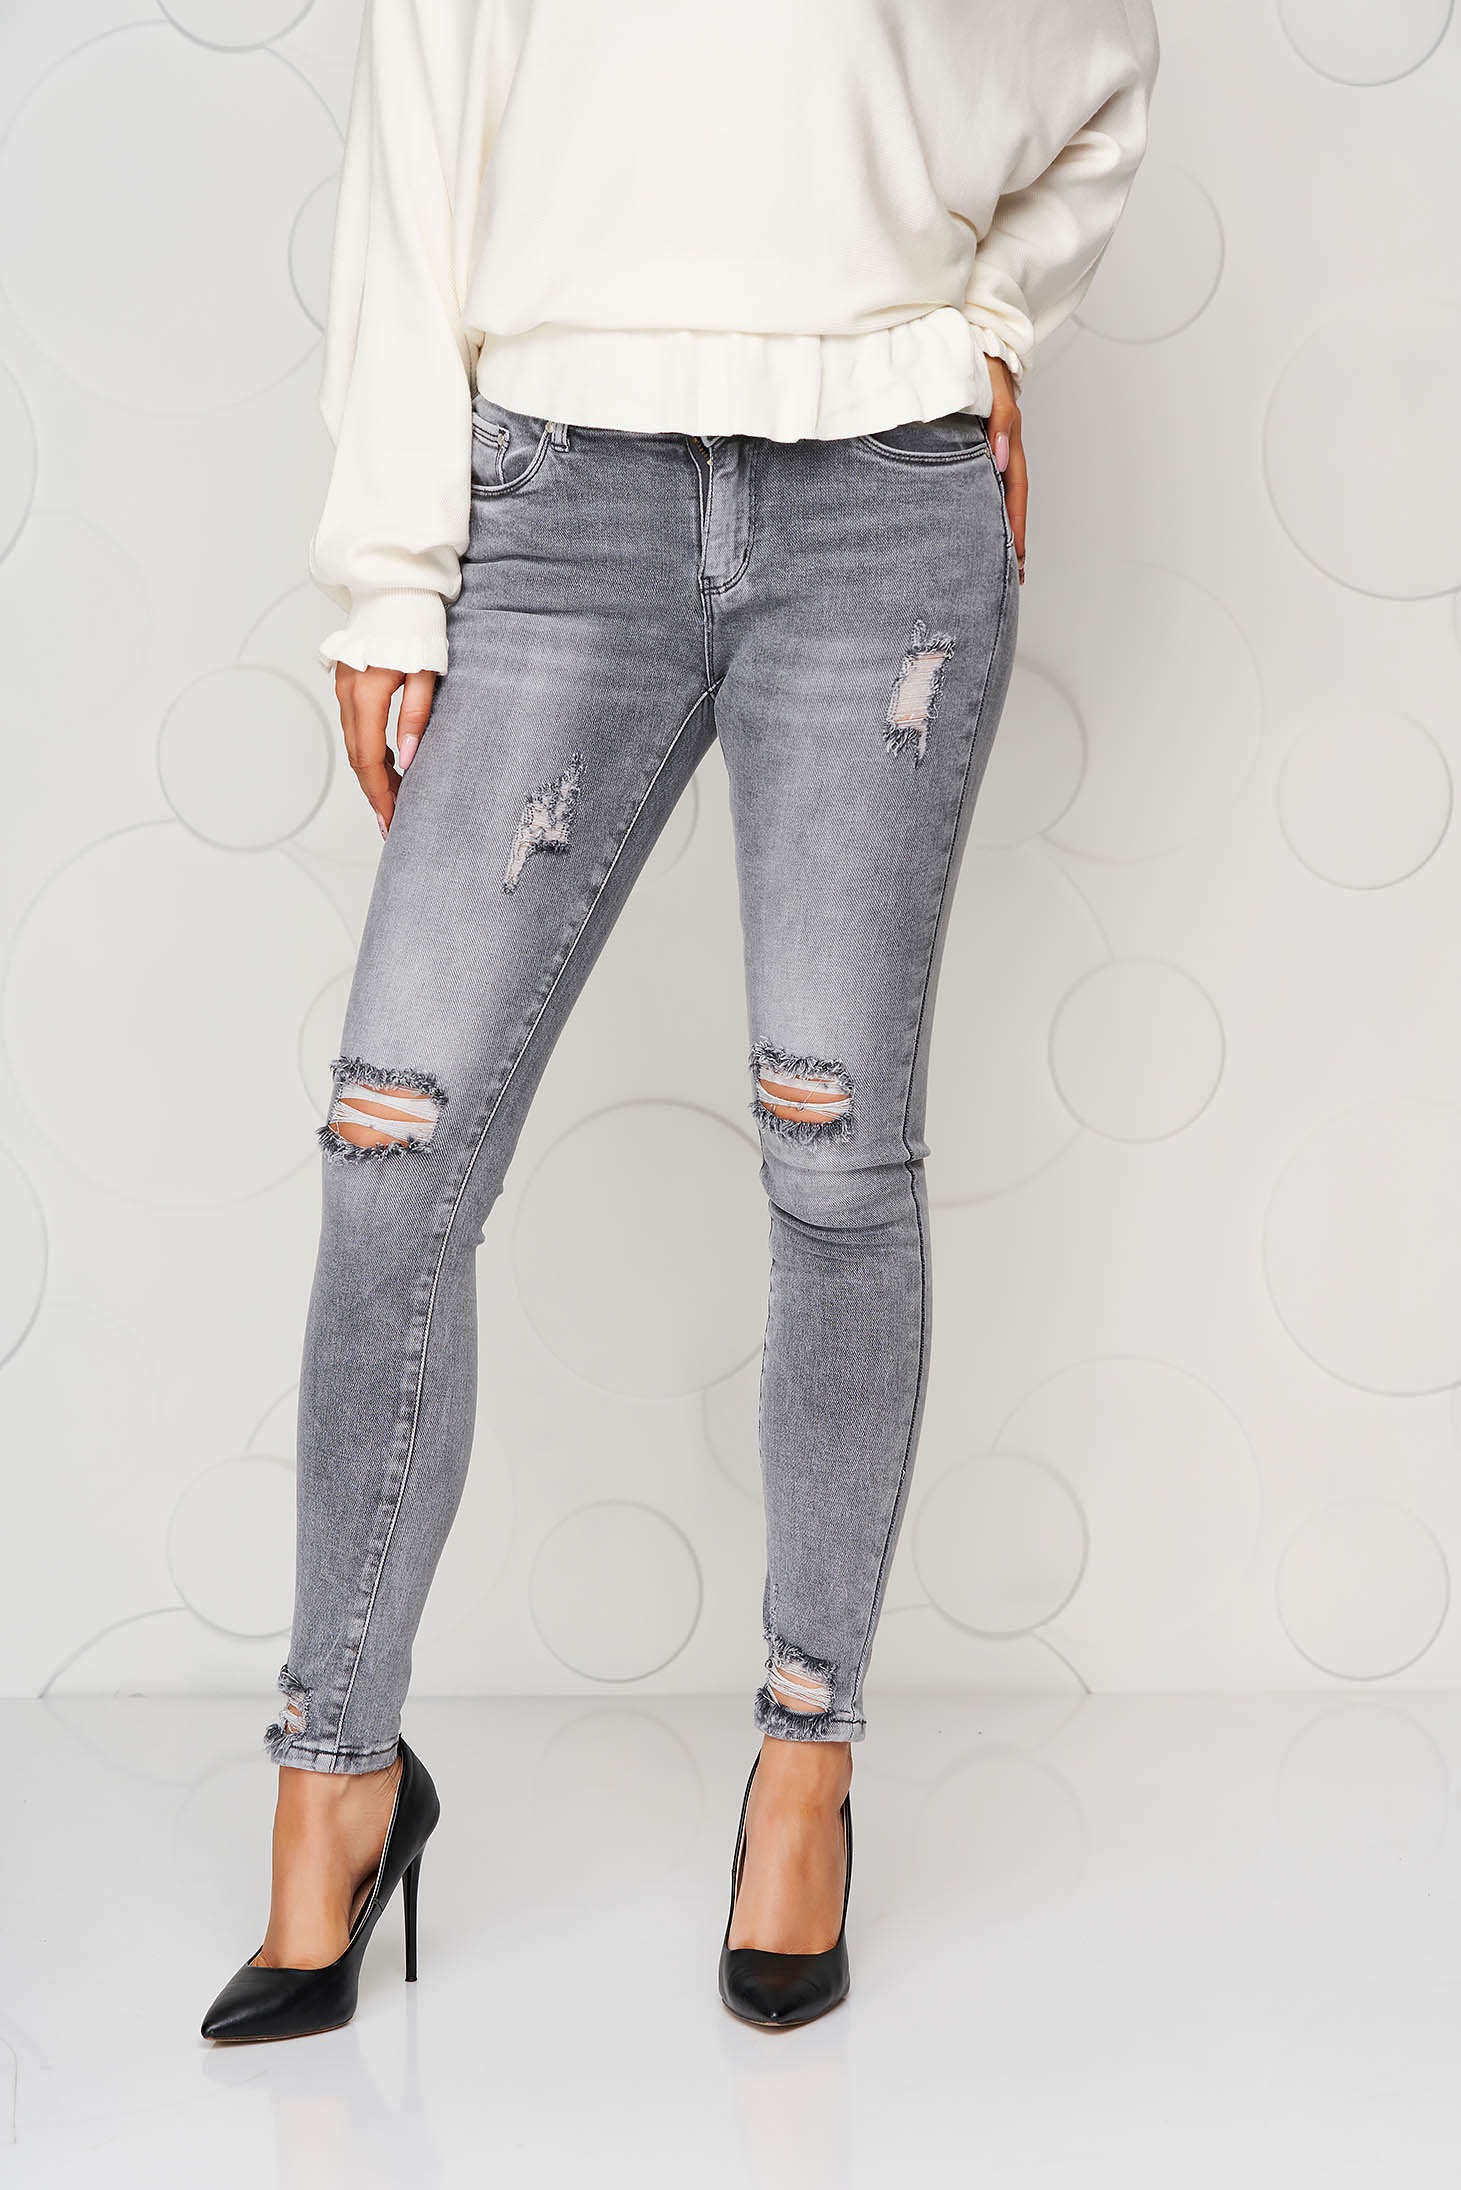 Grey jeans skinny jeans high waisted small rupture of material